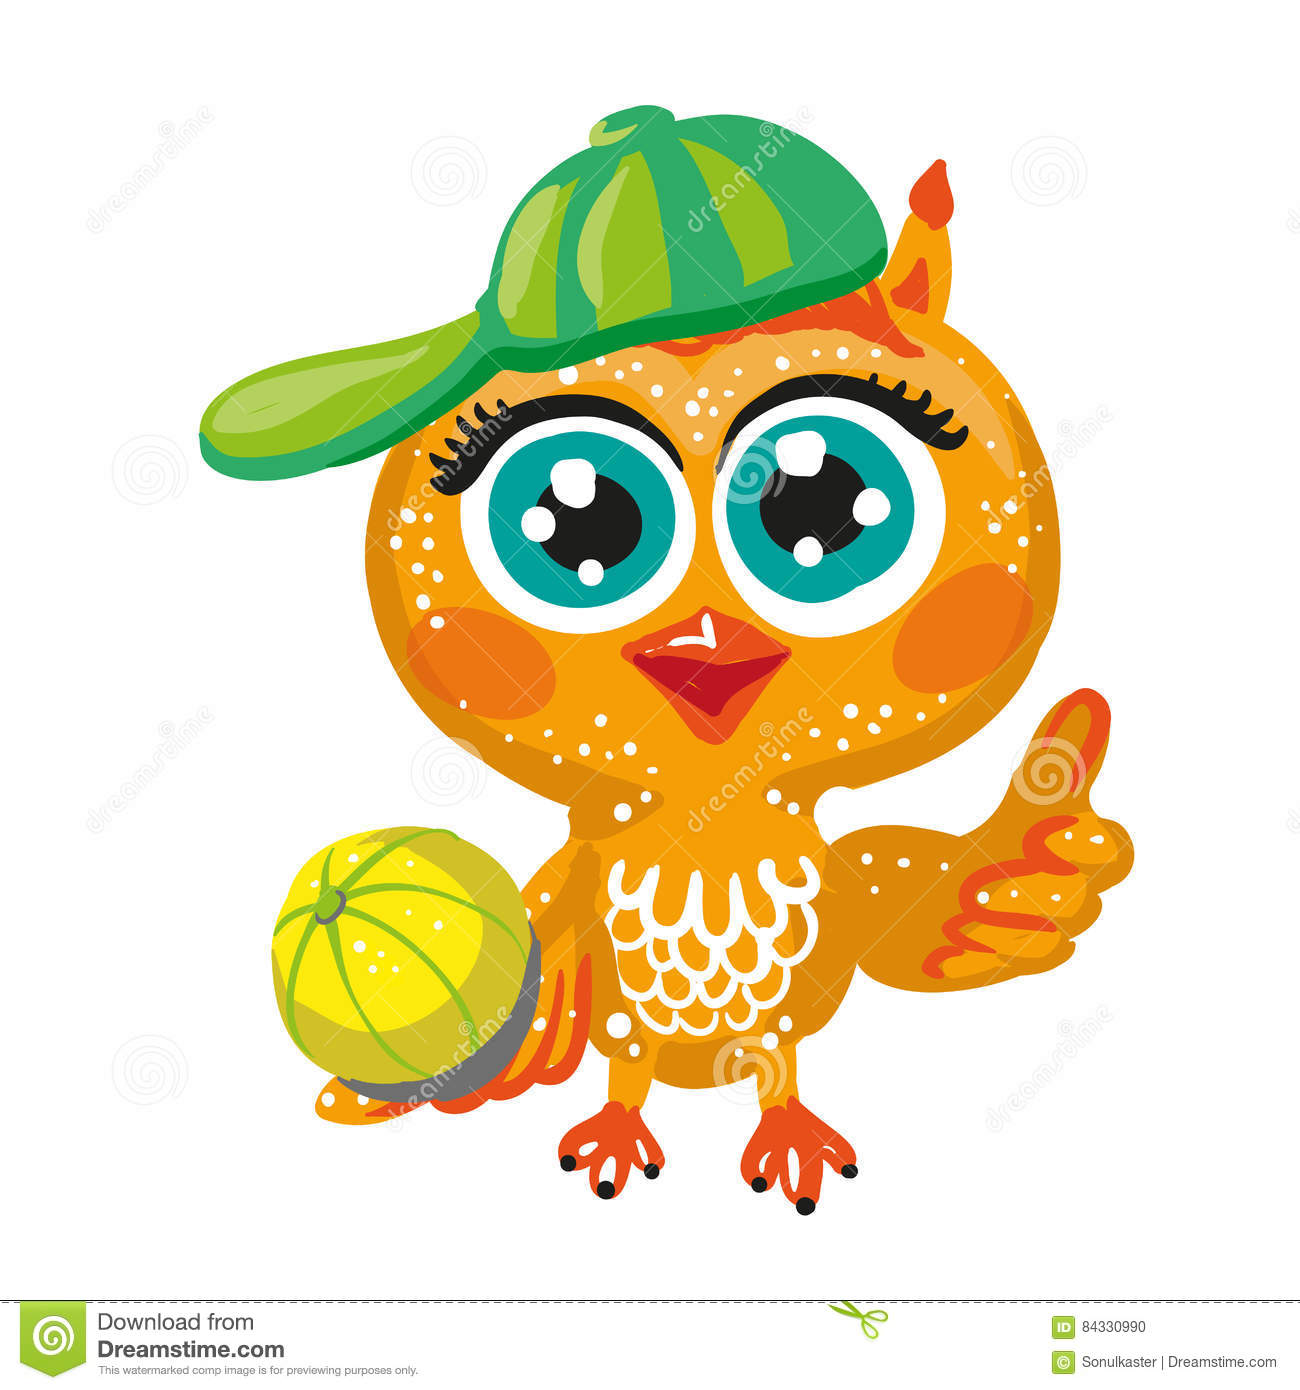 Cute Cartoon Owl Girl Cartoon Vector | CartoonDealer.com ...